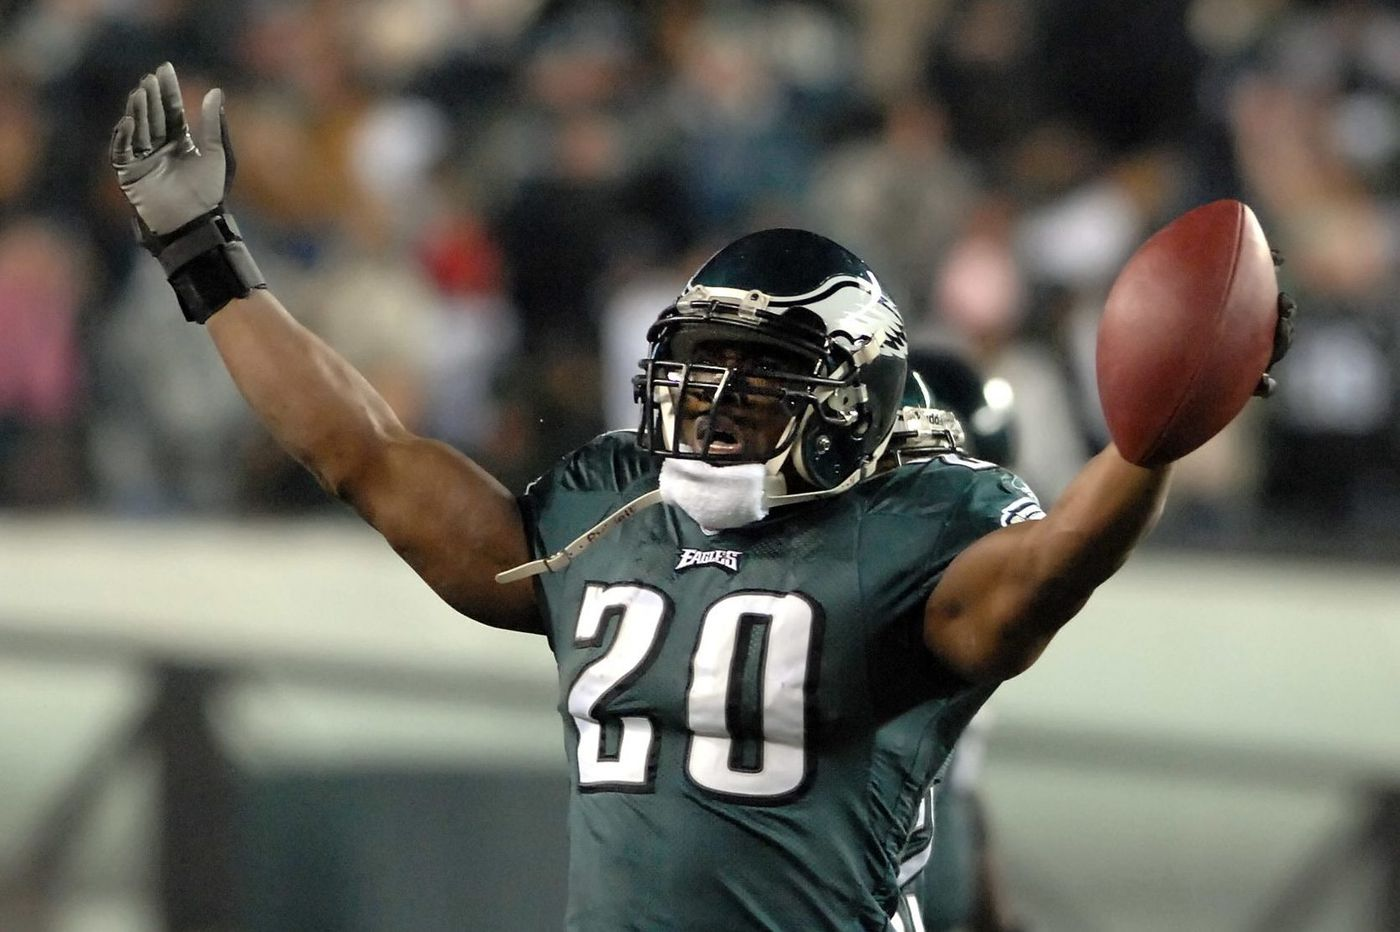 Brian Dawkins, on the verge of Hall of Fame induction, has made peace with his messy departure from Philly